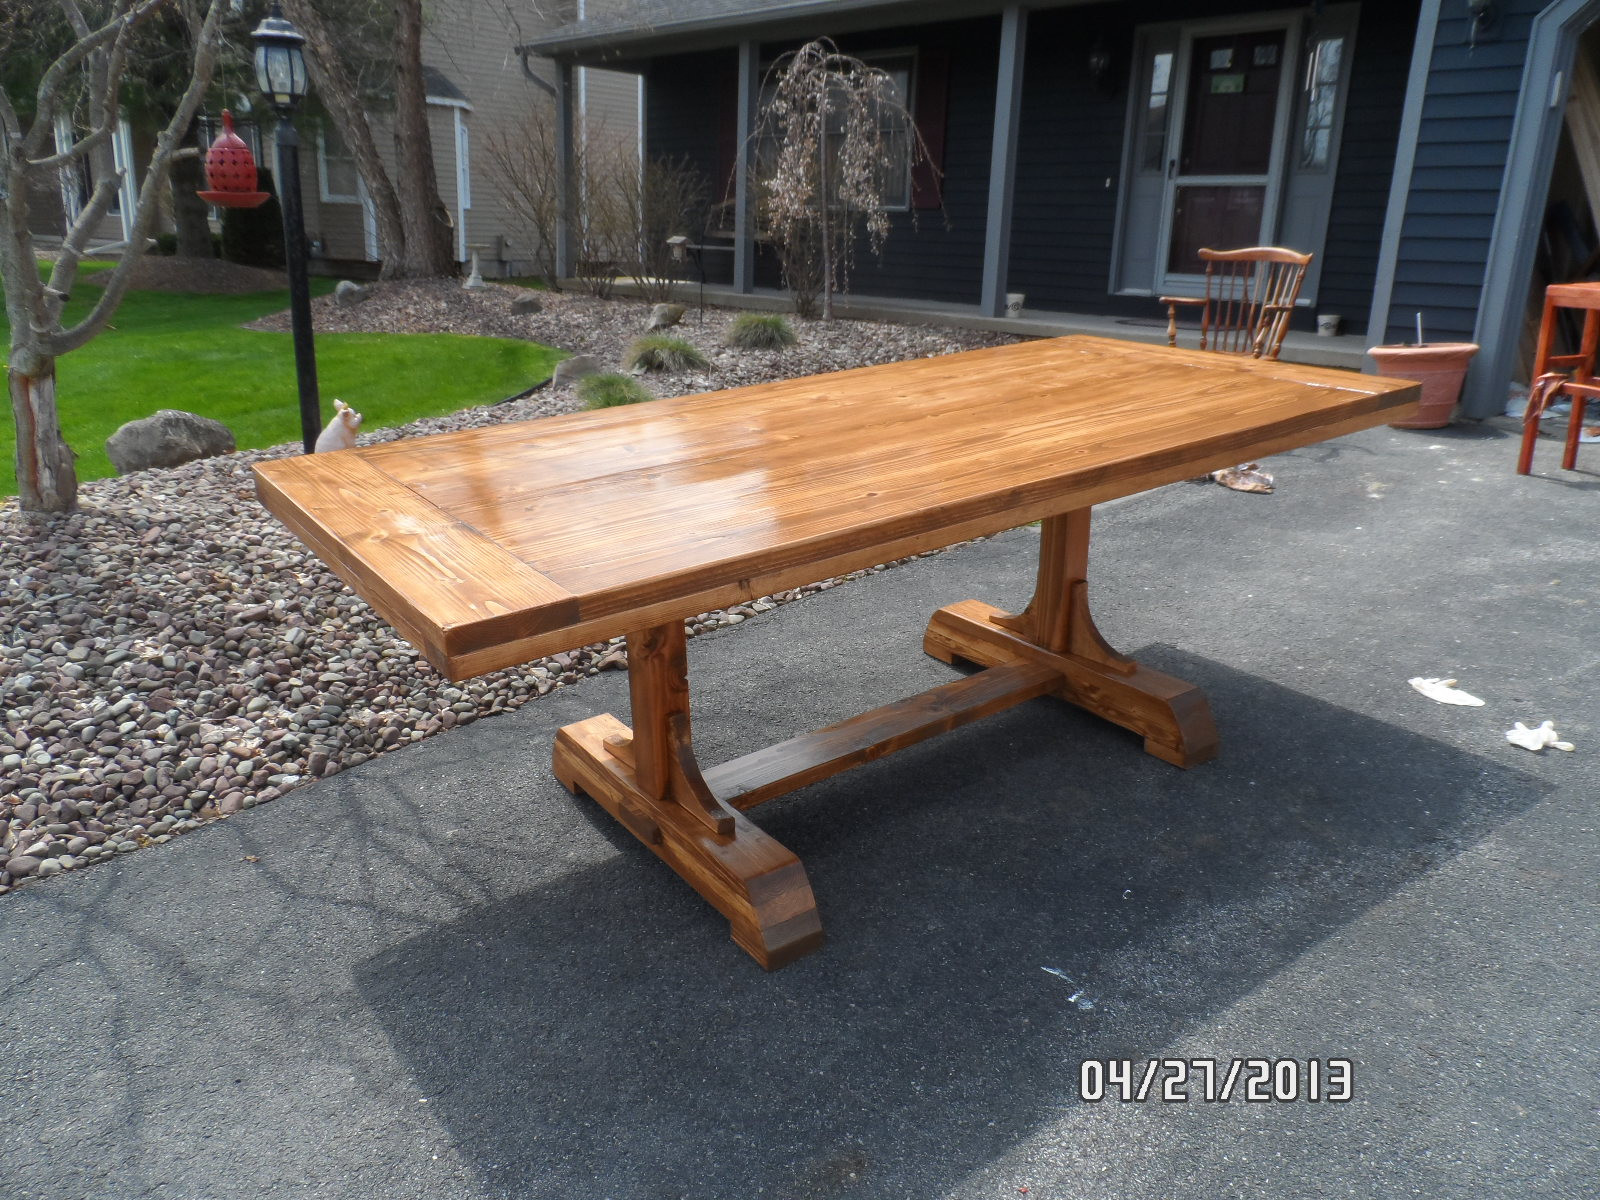 Best ideas about DIY Dining Room Table Plans . Save or Pin Woodwork Dining Table Plans Diy PDF Plans Now.